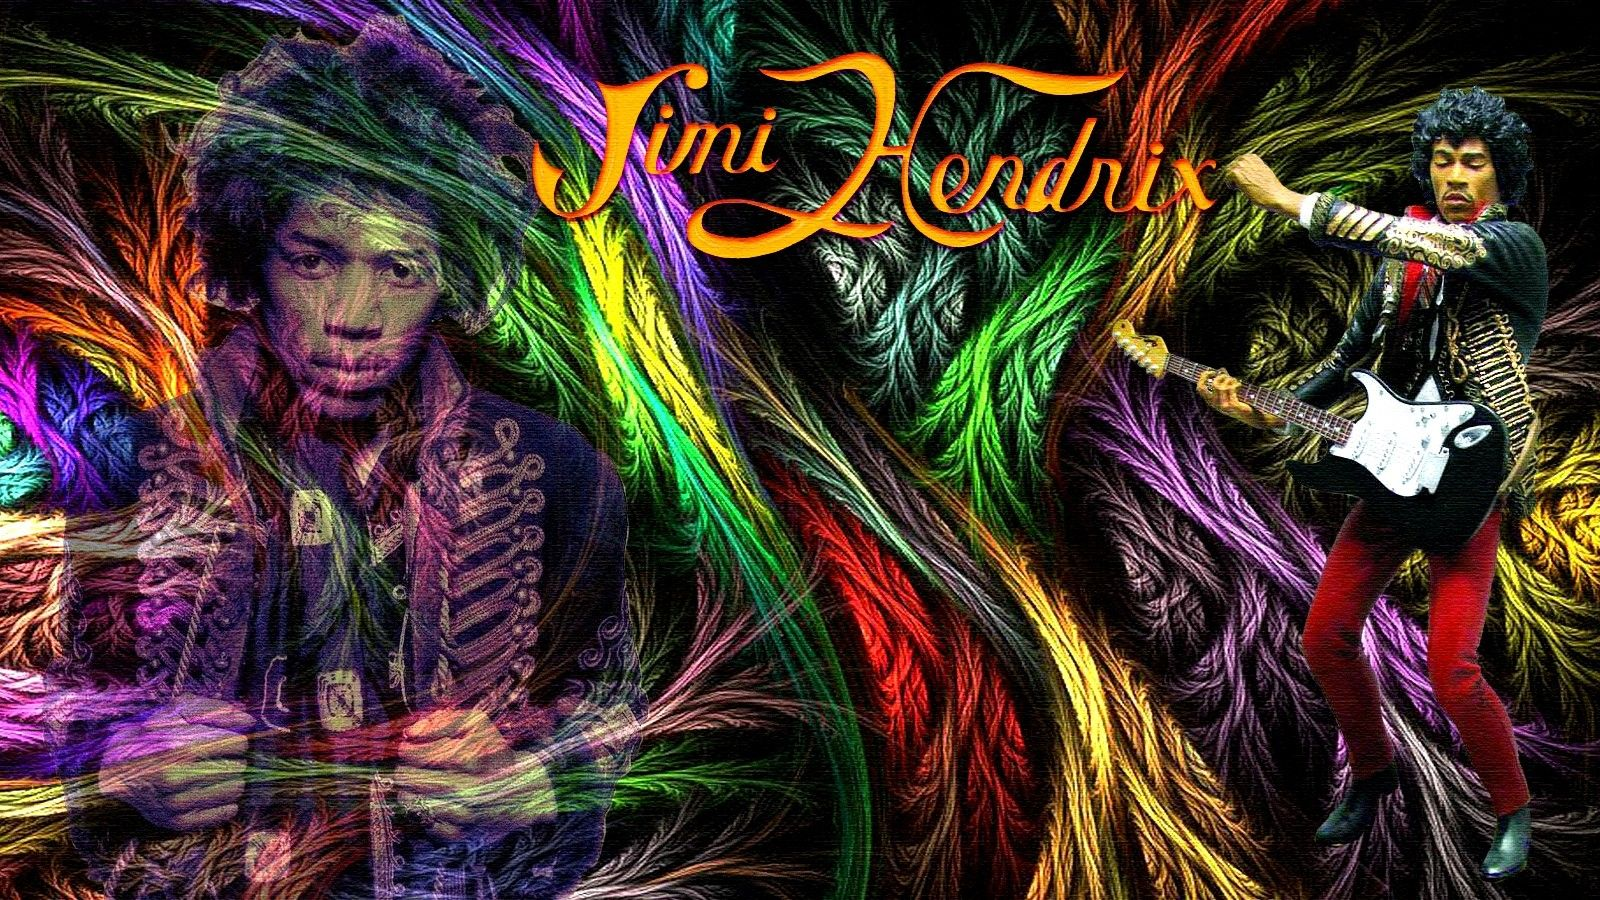 Jimi hendrix this out our new jimi hendrix - Jimi hendrix wallpaper psychedelic ...